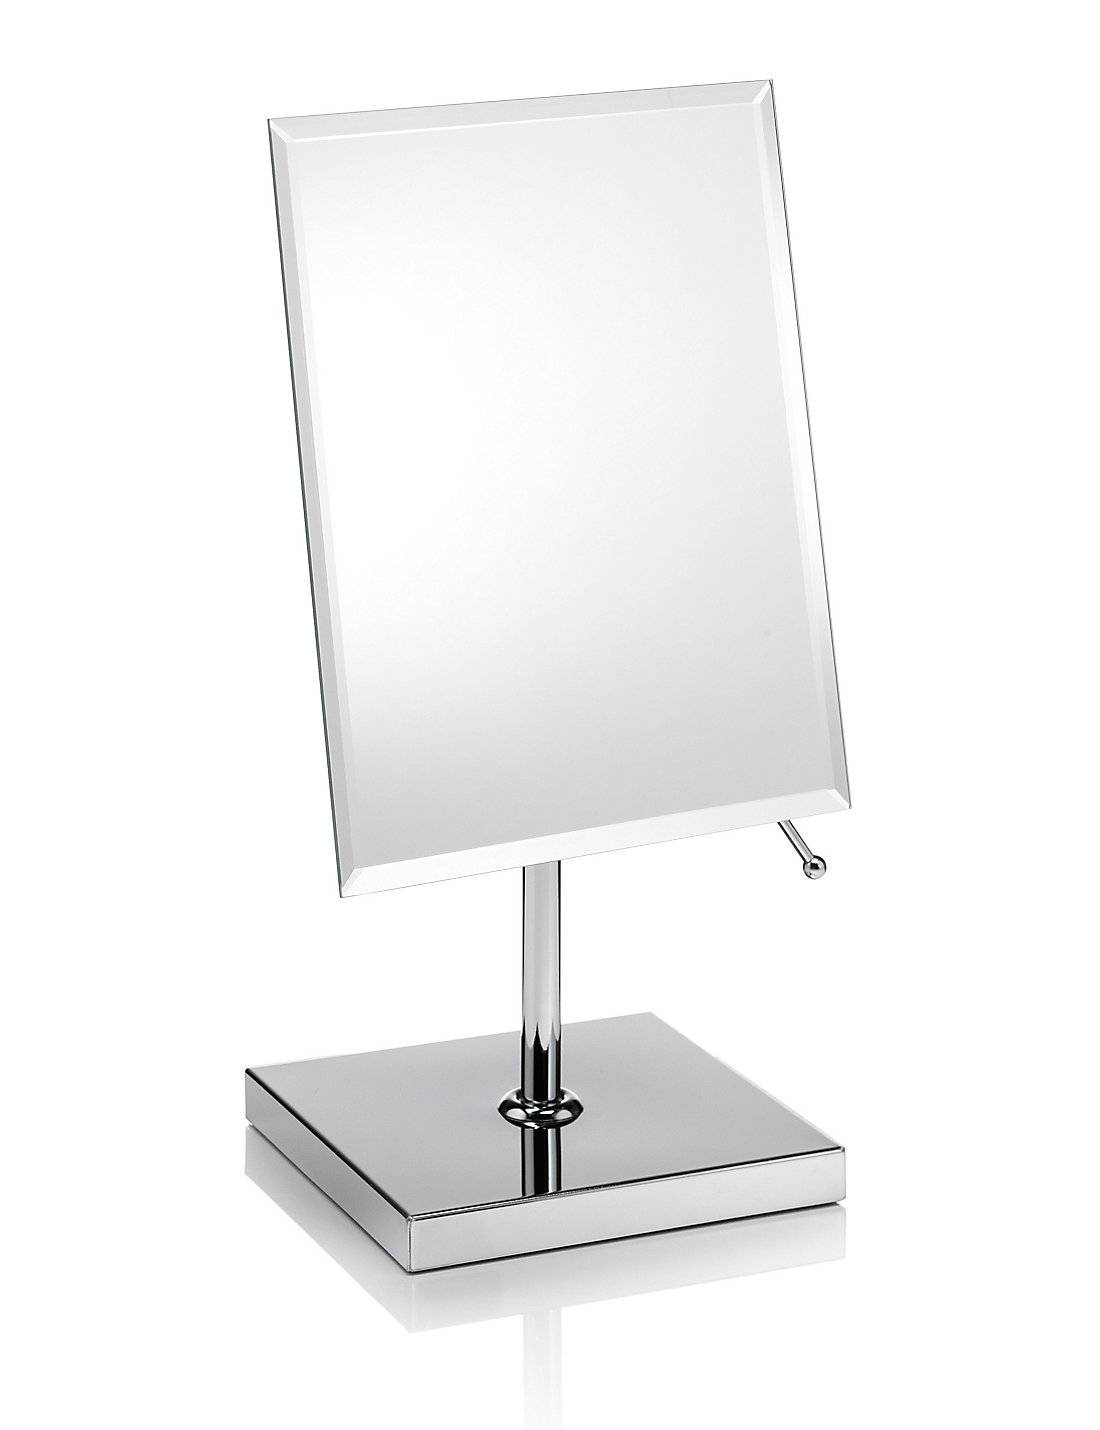 Large Free Standing Bathroom Mirrors | Home With Long Free Standing Mirrors (View 15 of 25)